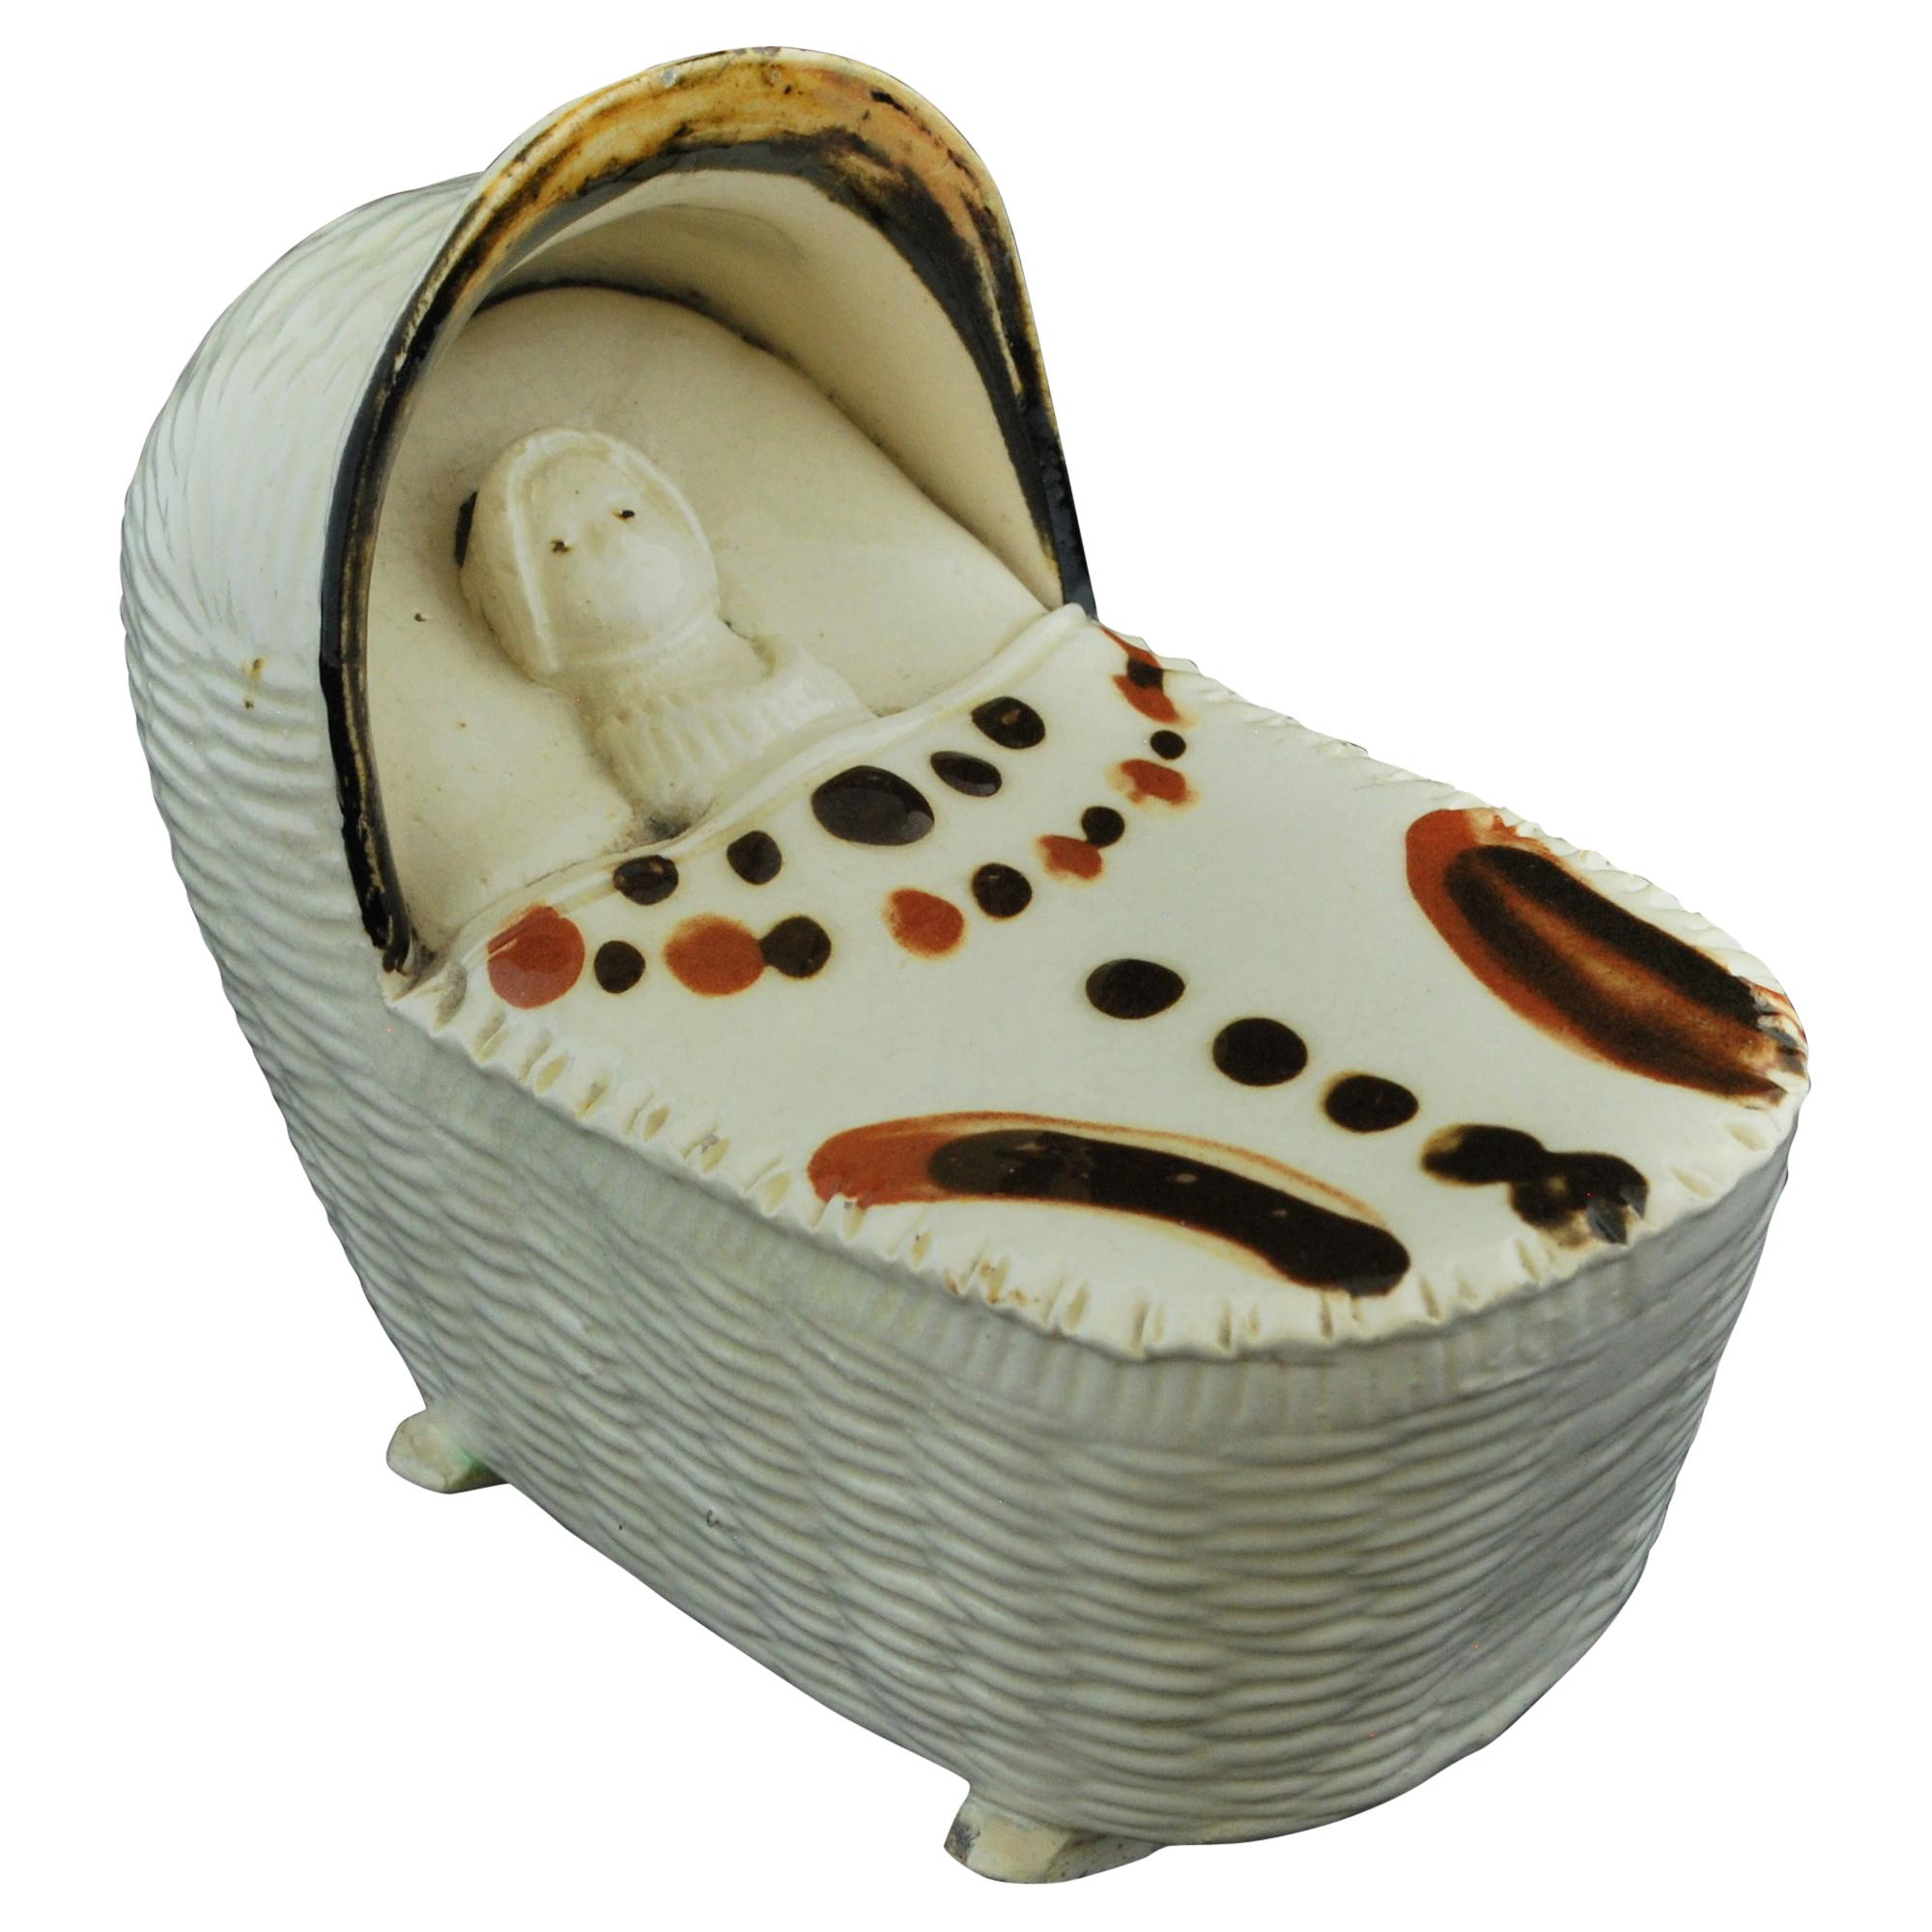 Cradle with Infant, Bovey Tracey, circa 1790